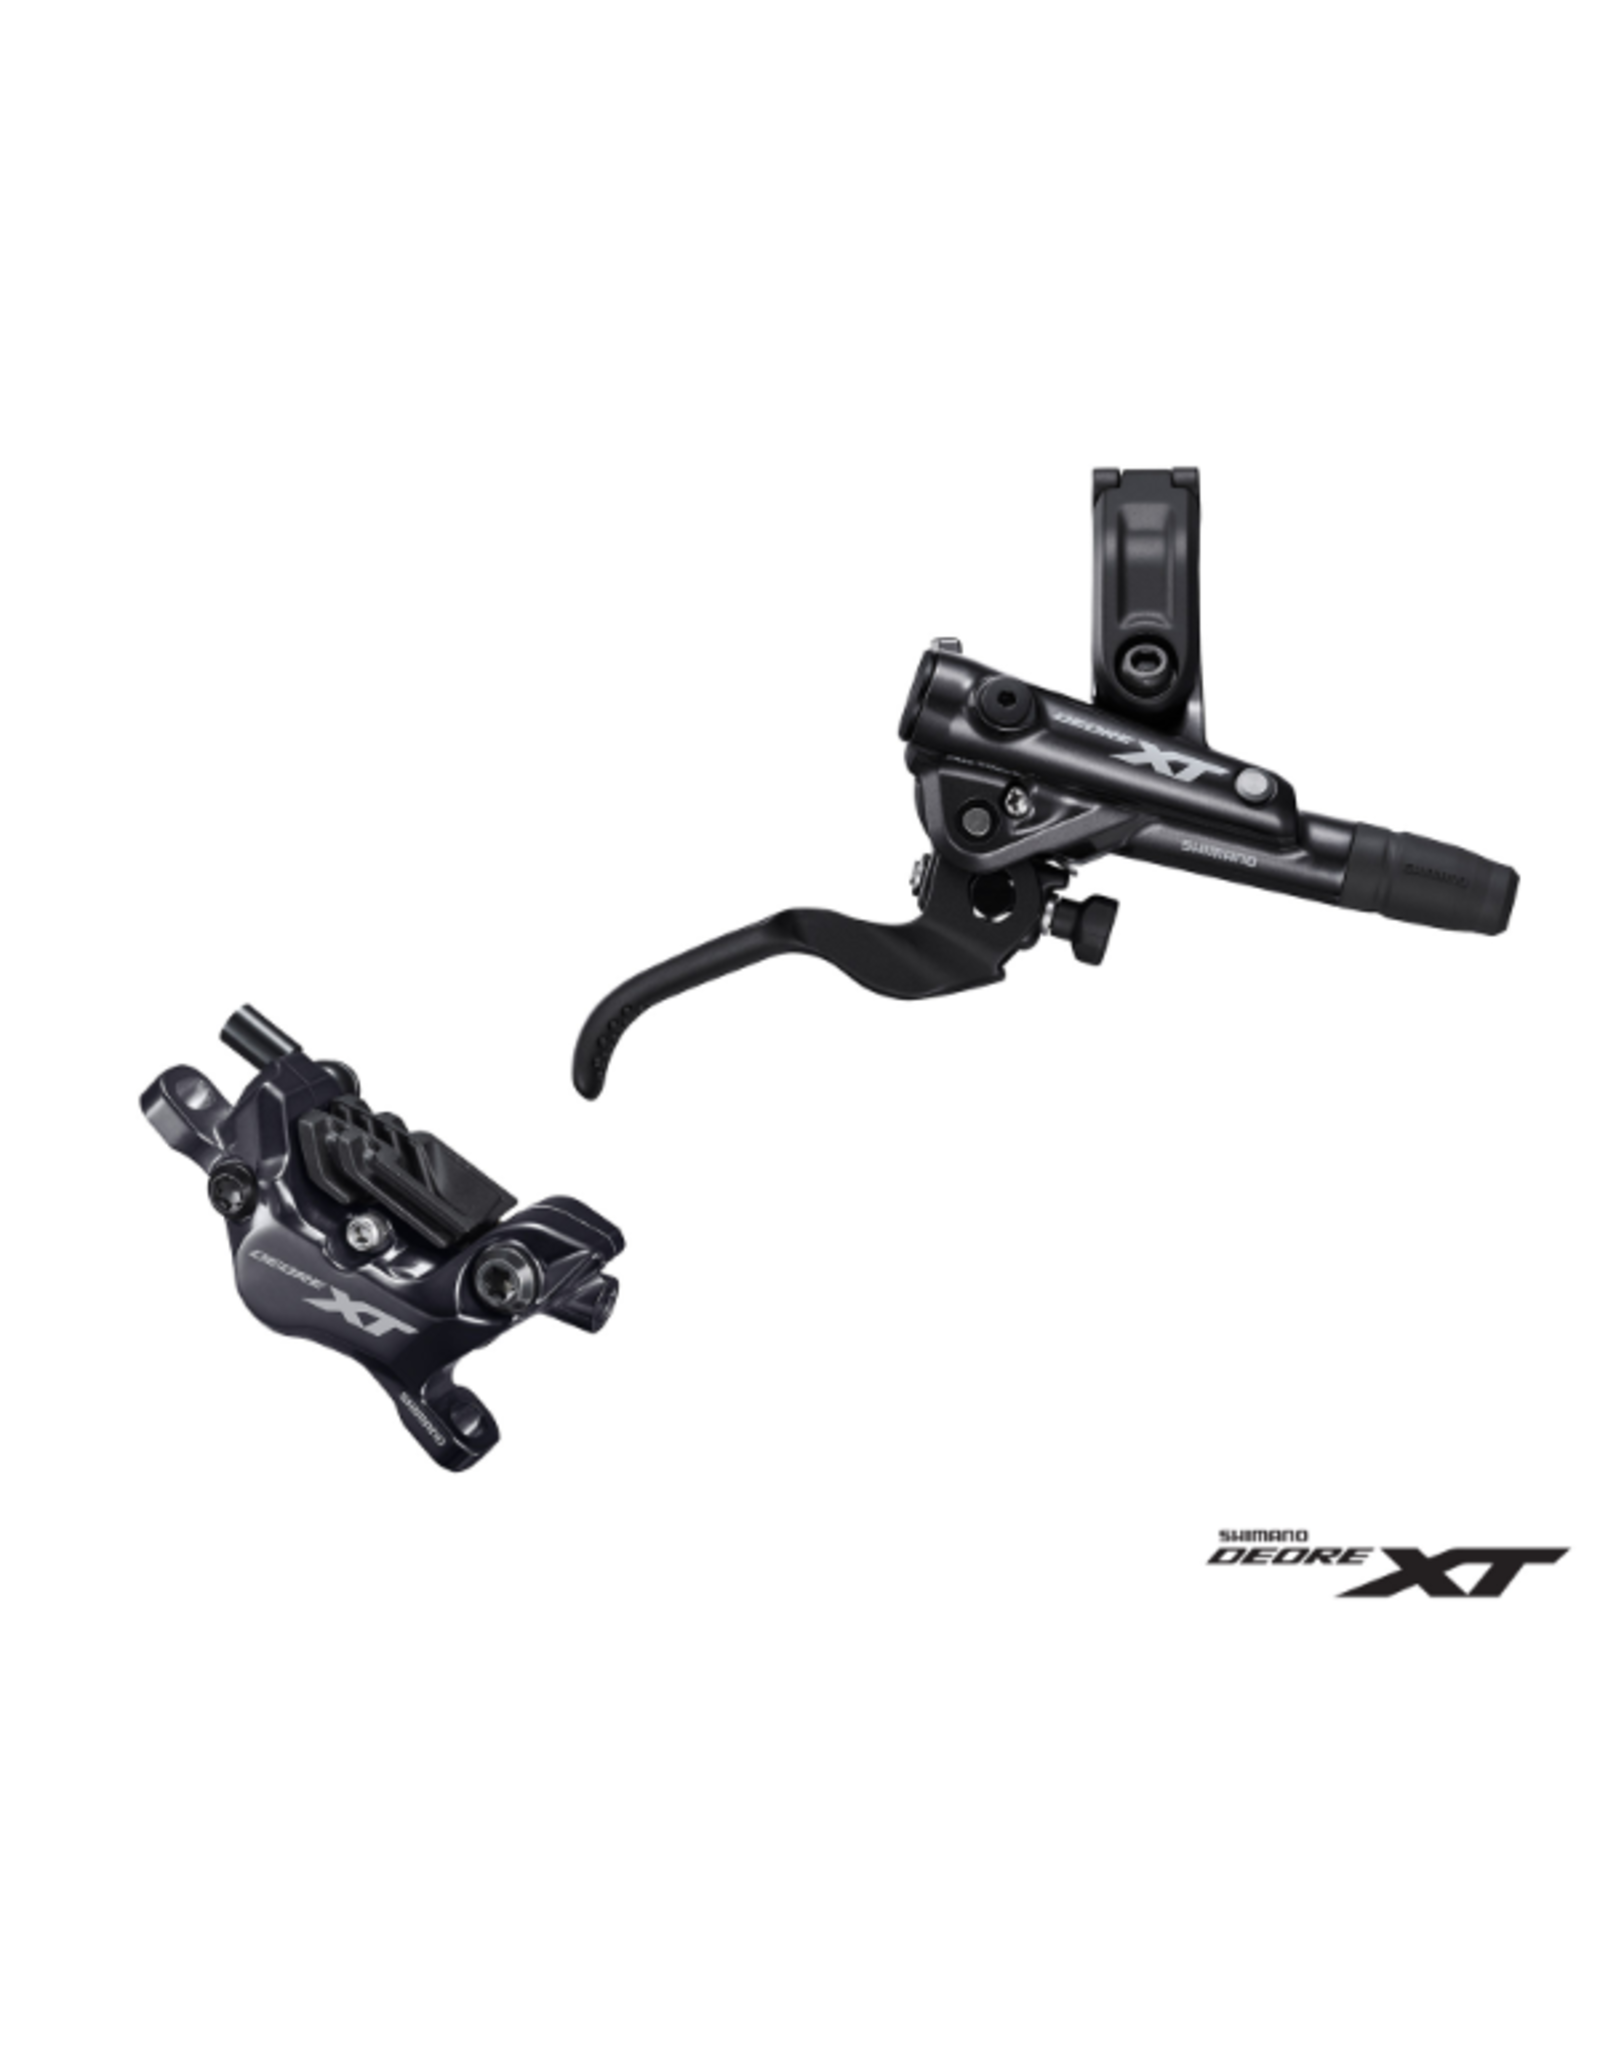 Shimano SHIMANO XT TRAIL M8120 FRONT RIGHT 1000MM W/O ROTOR DISC BRAKE COMPLETE